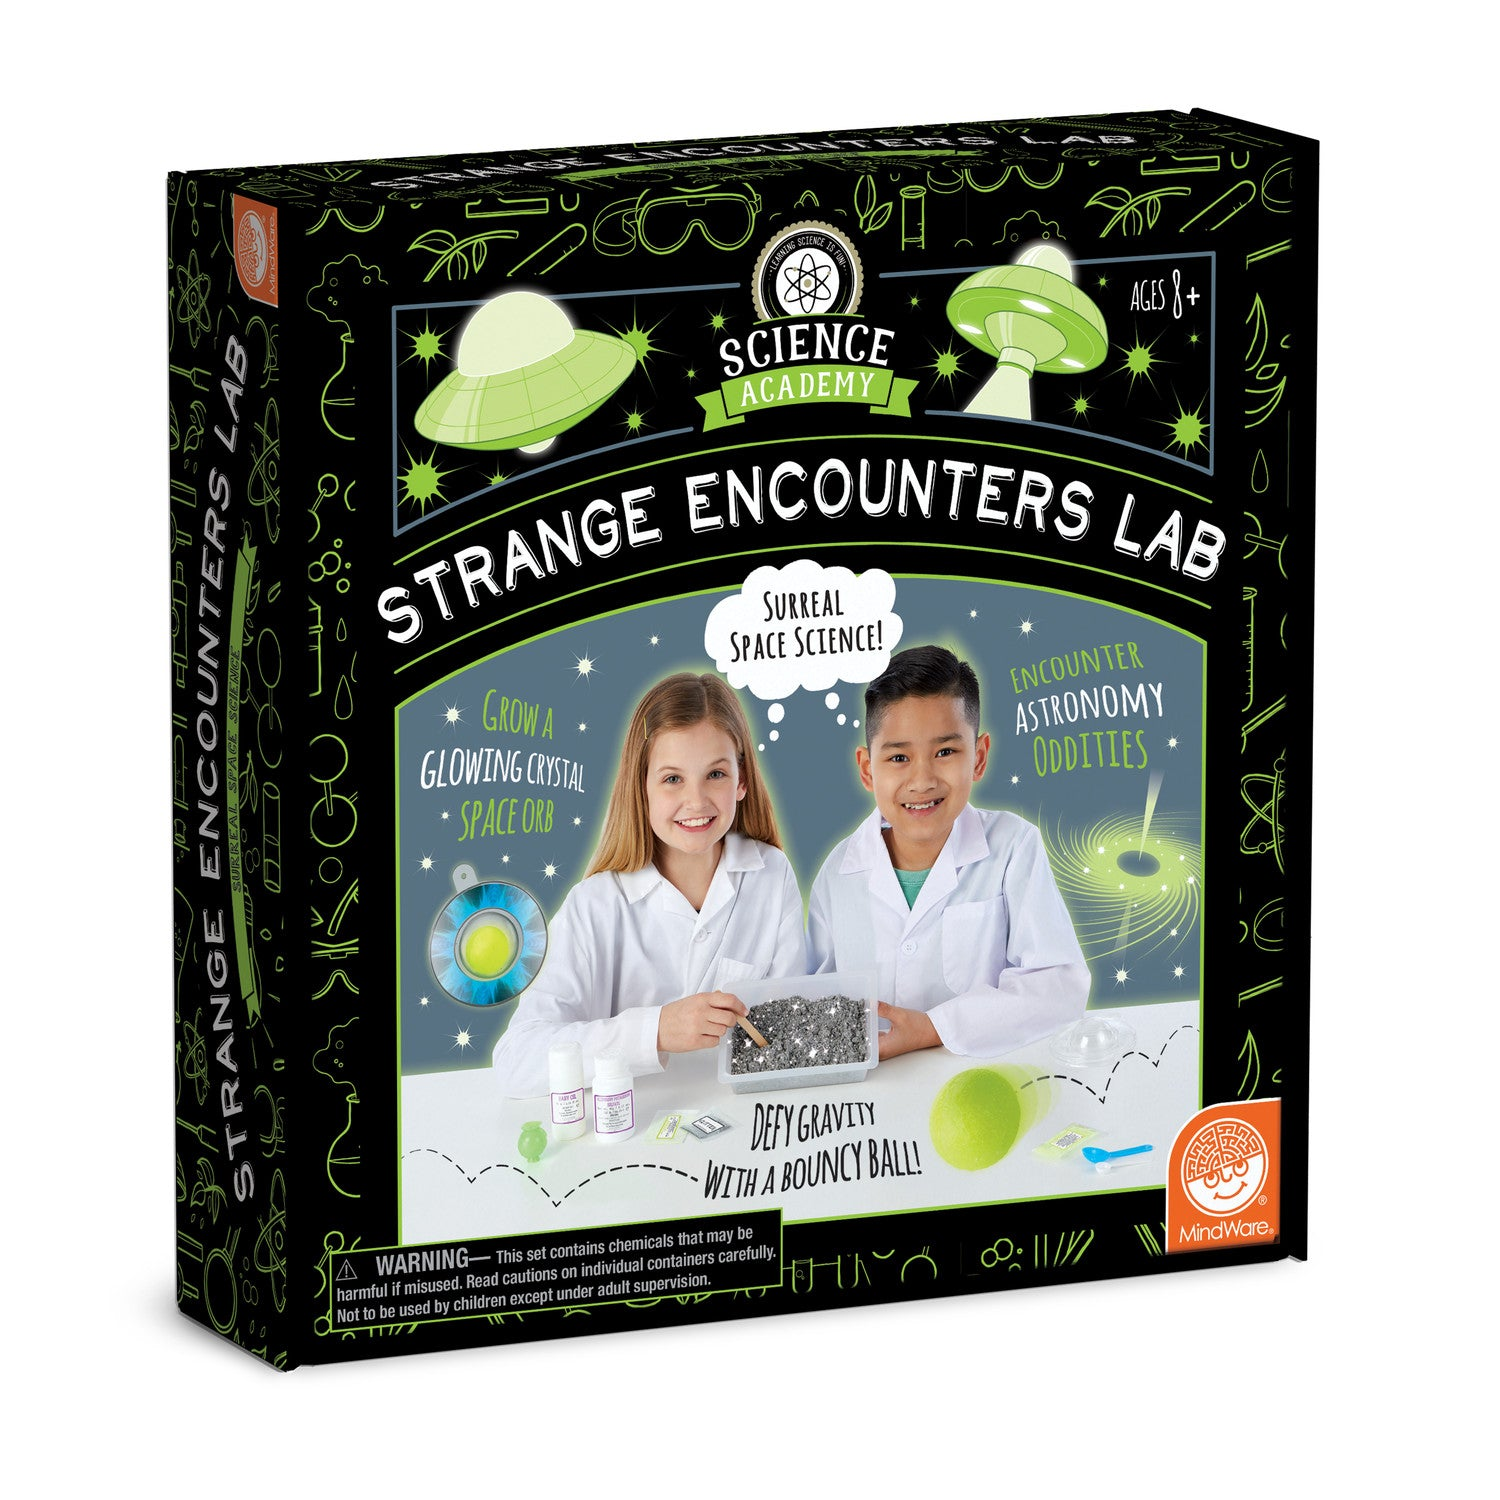 Strange Encounters Lab Kit